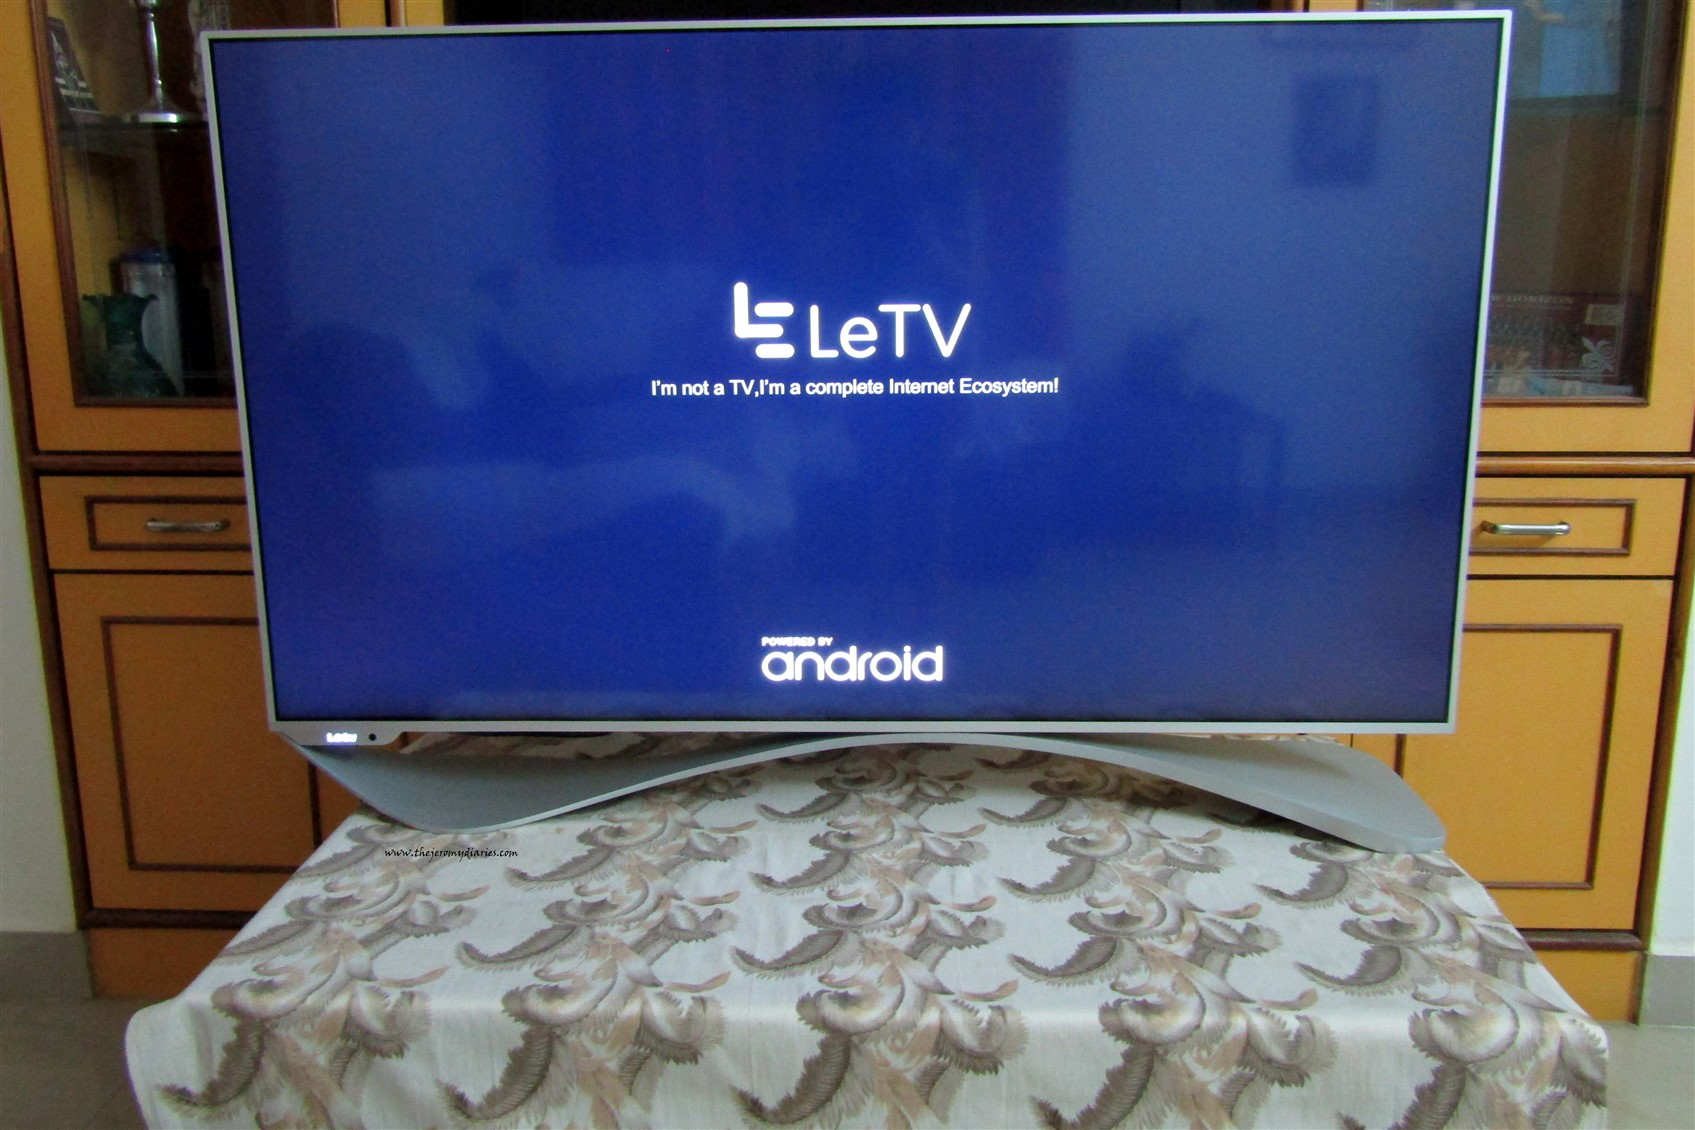 letv-55-inch-super3-x55-price-and-specifications-the-jeromy-diaries